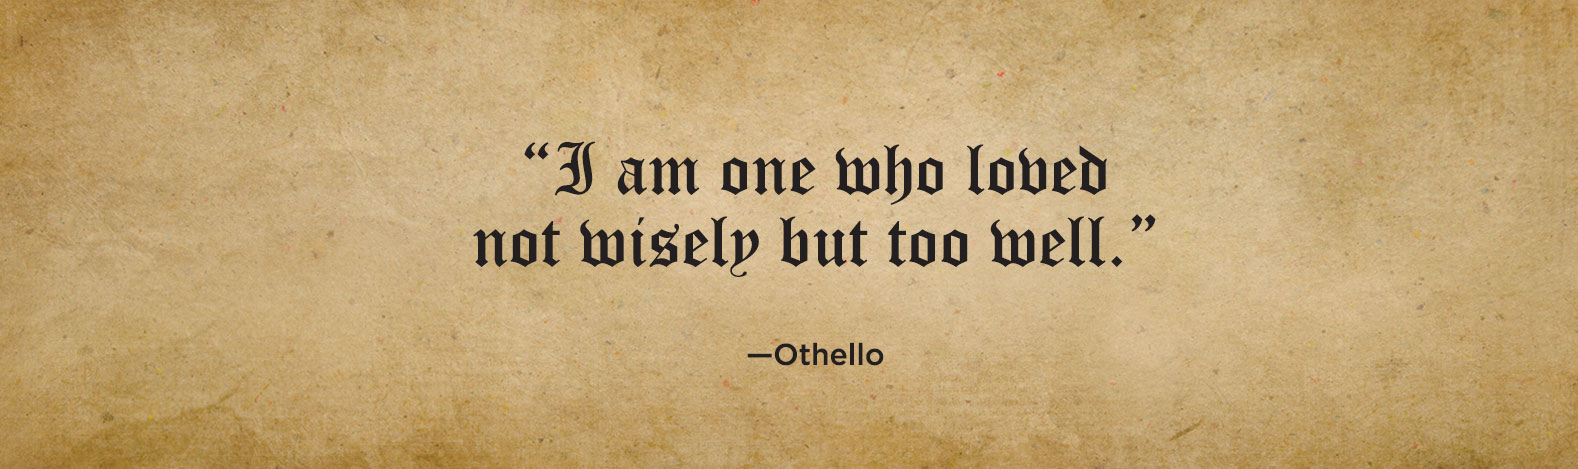 Othello-Then-Movers and Shakespeare—Shakespeare and Business.jpg